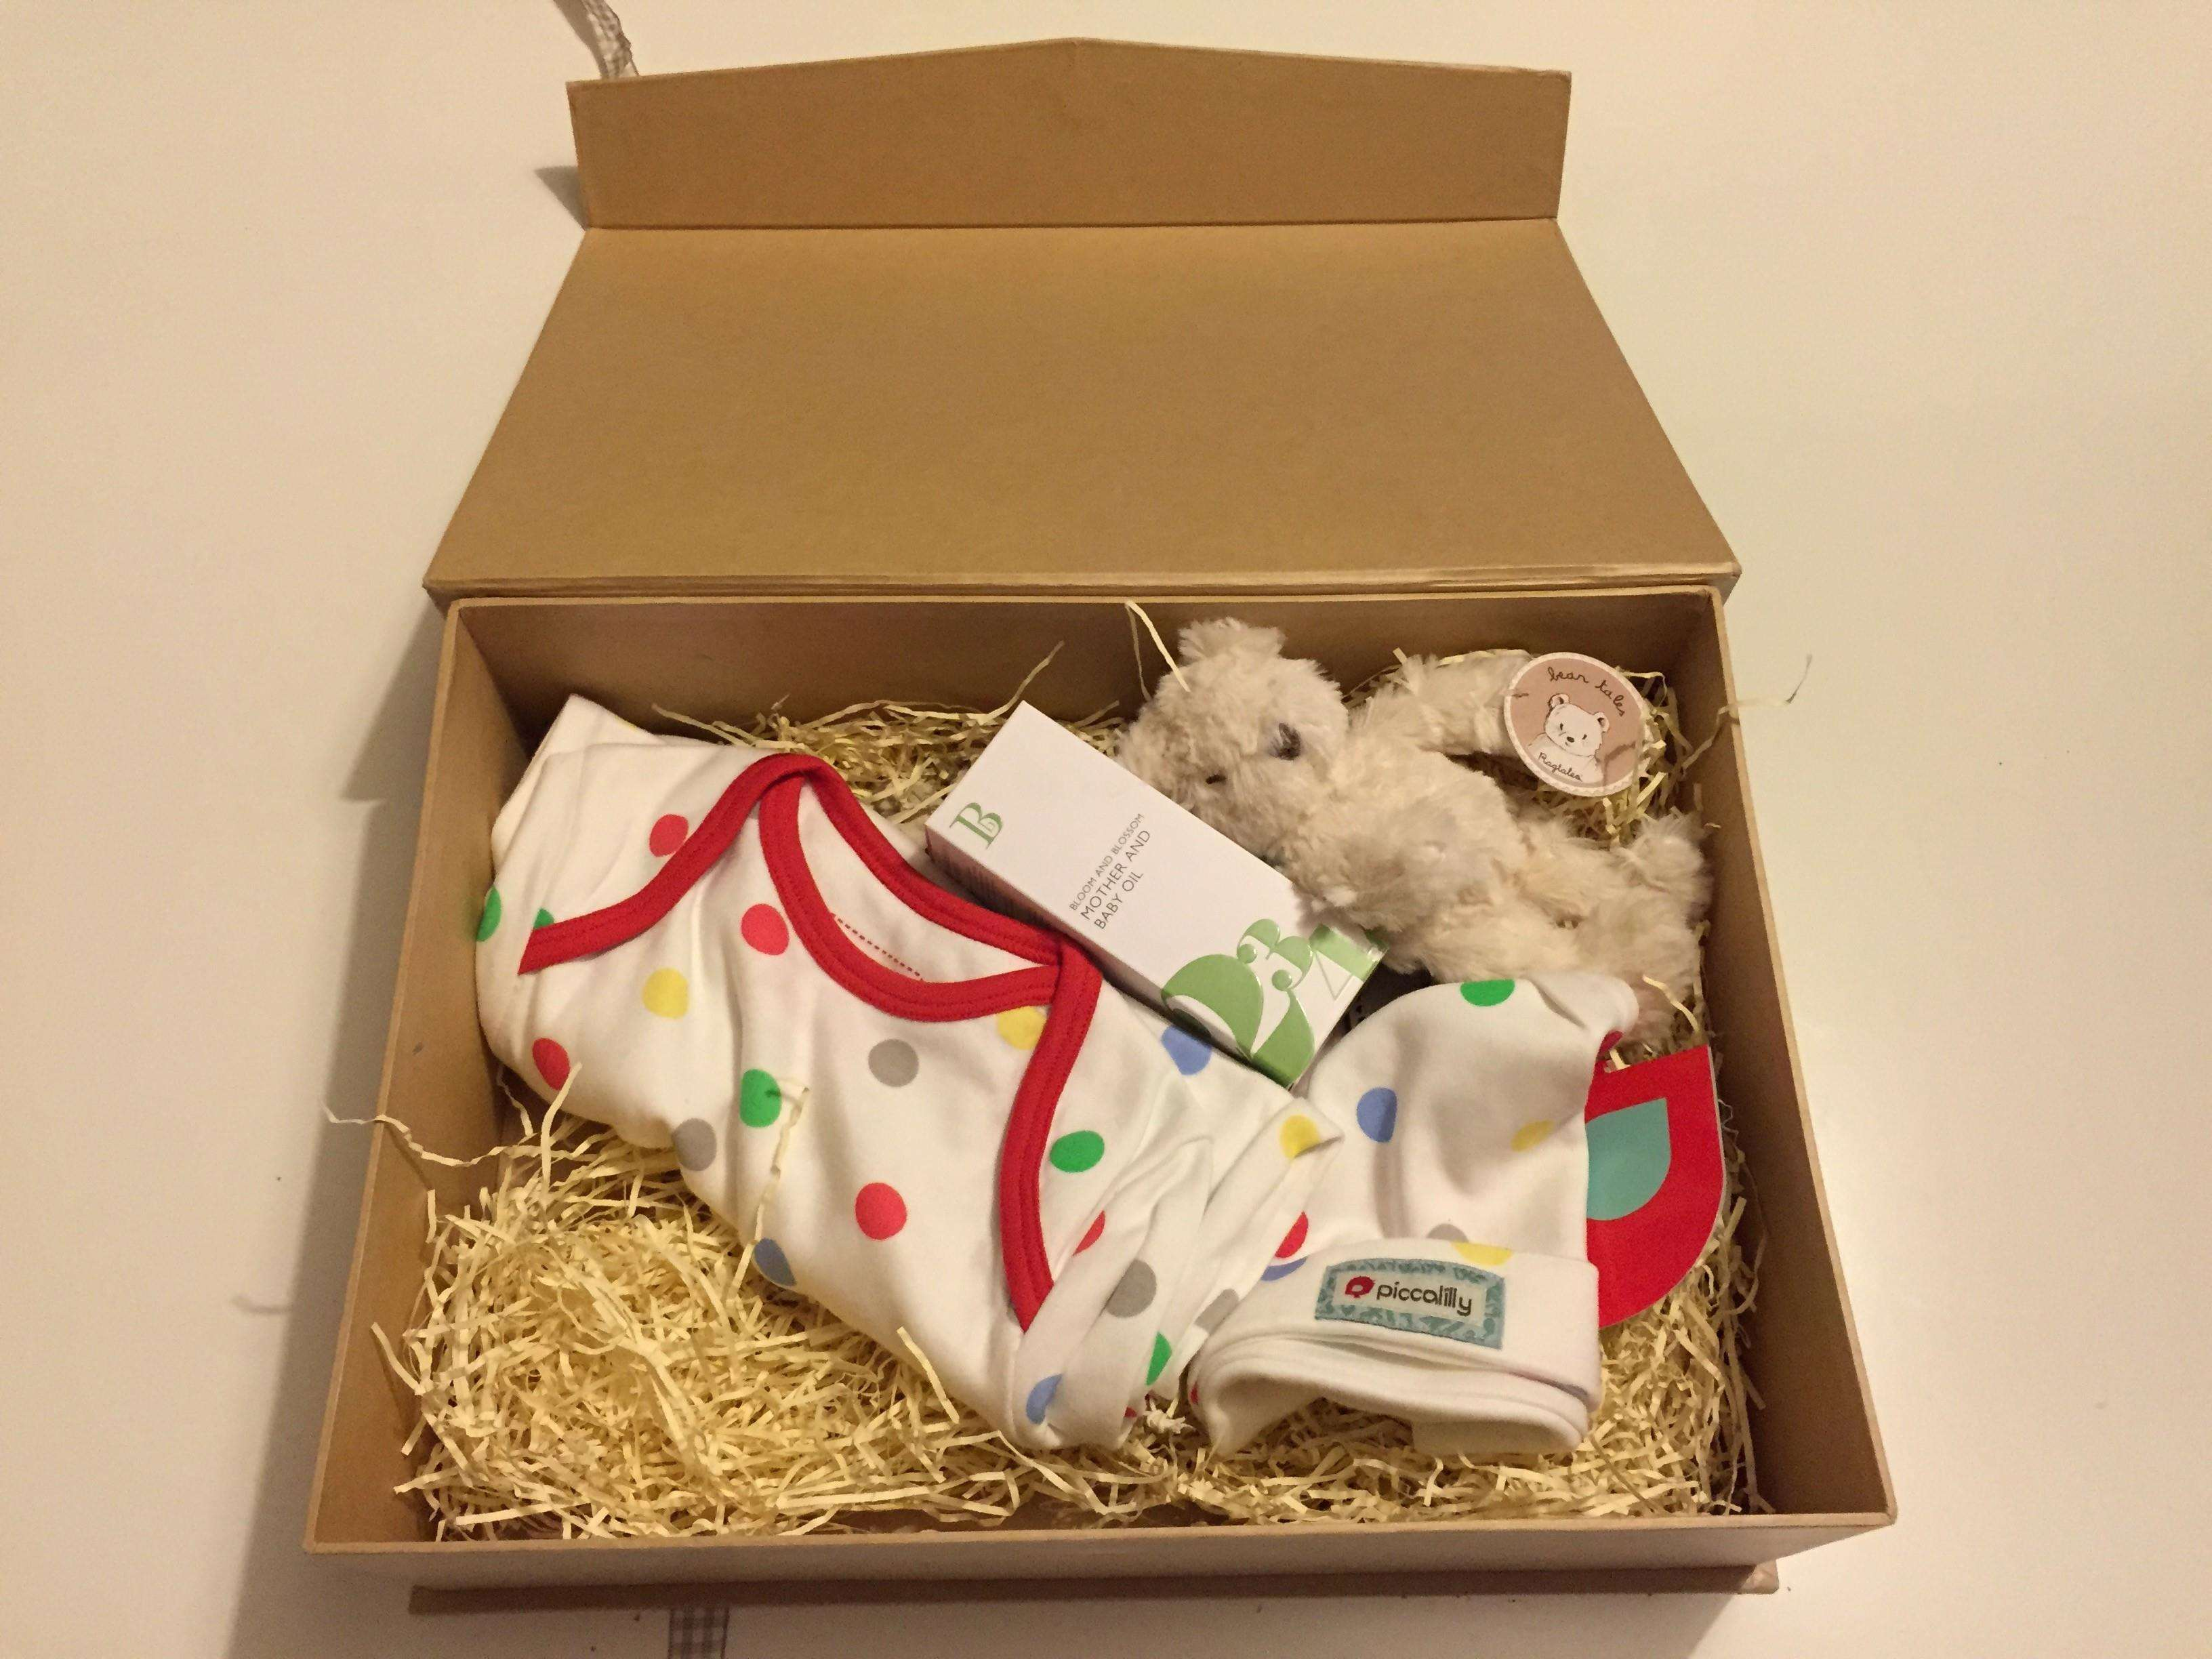 Win Mum a Burble Baby Mother's Day gift hamper, IMG 3388 e1424900459241%, product-review%